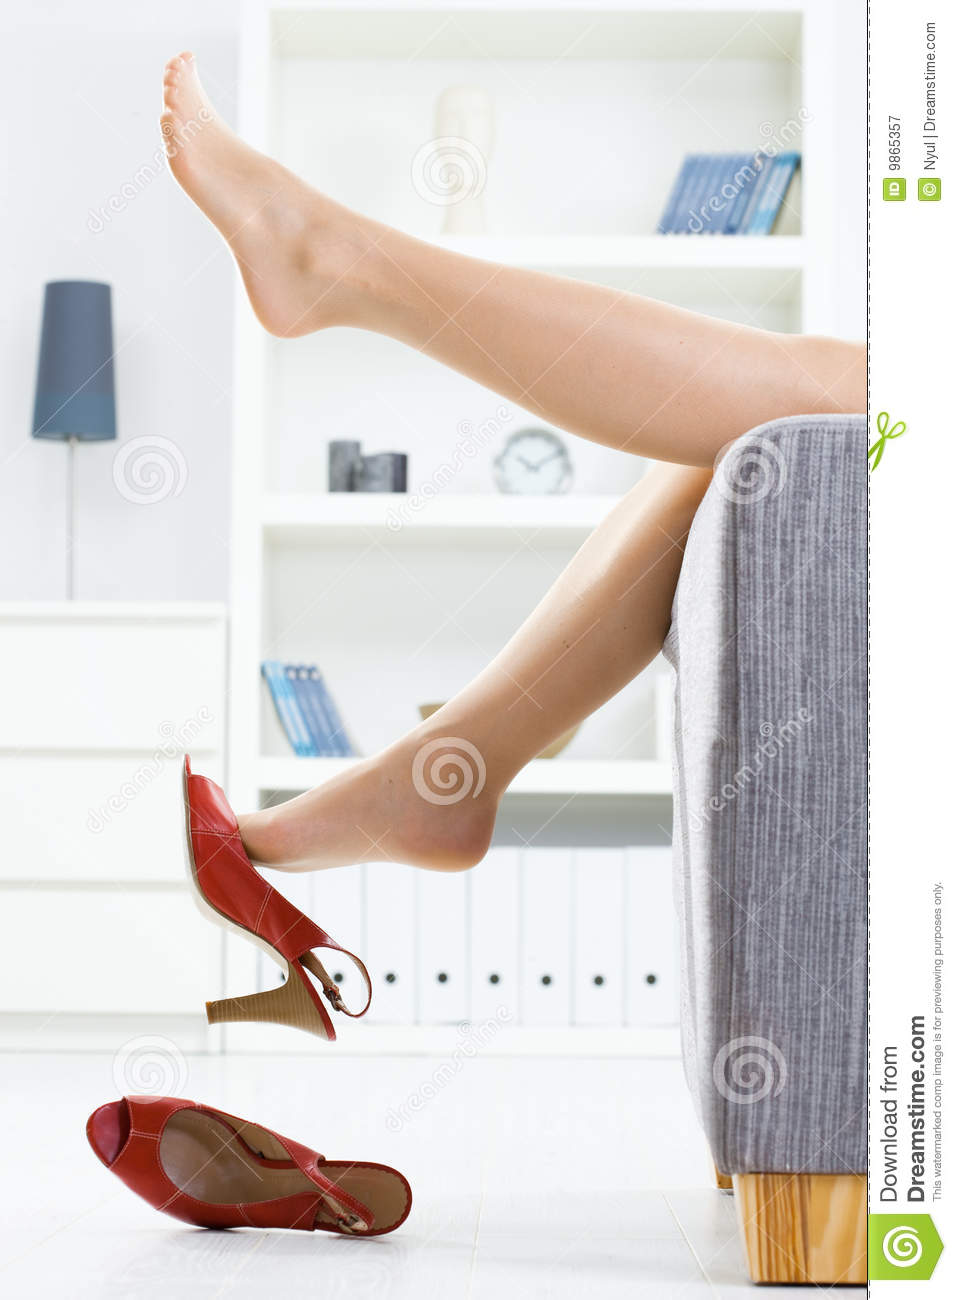 taking off shoes royalty free stock photography - image: 9865357